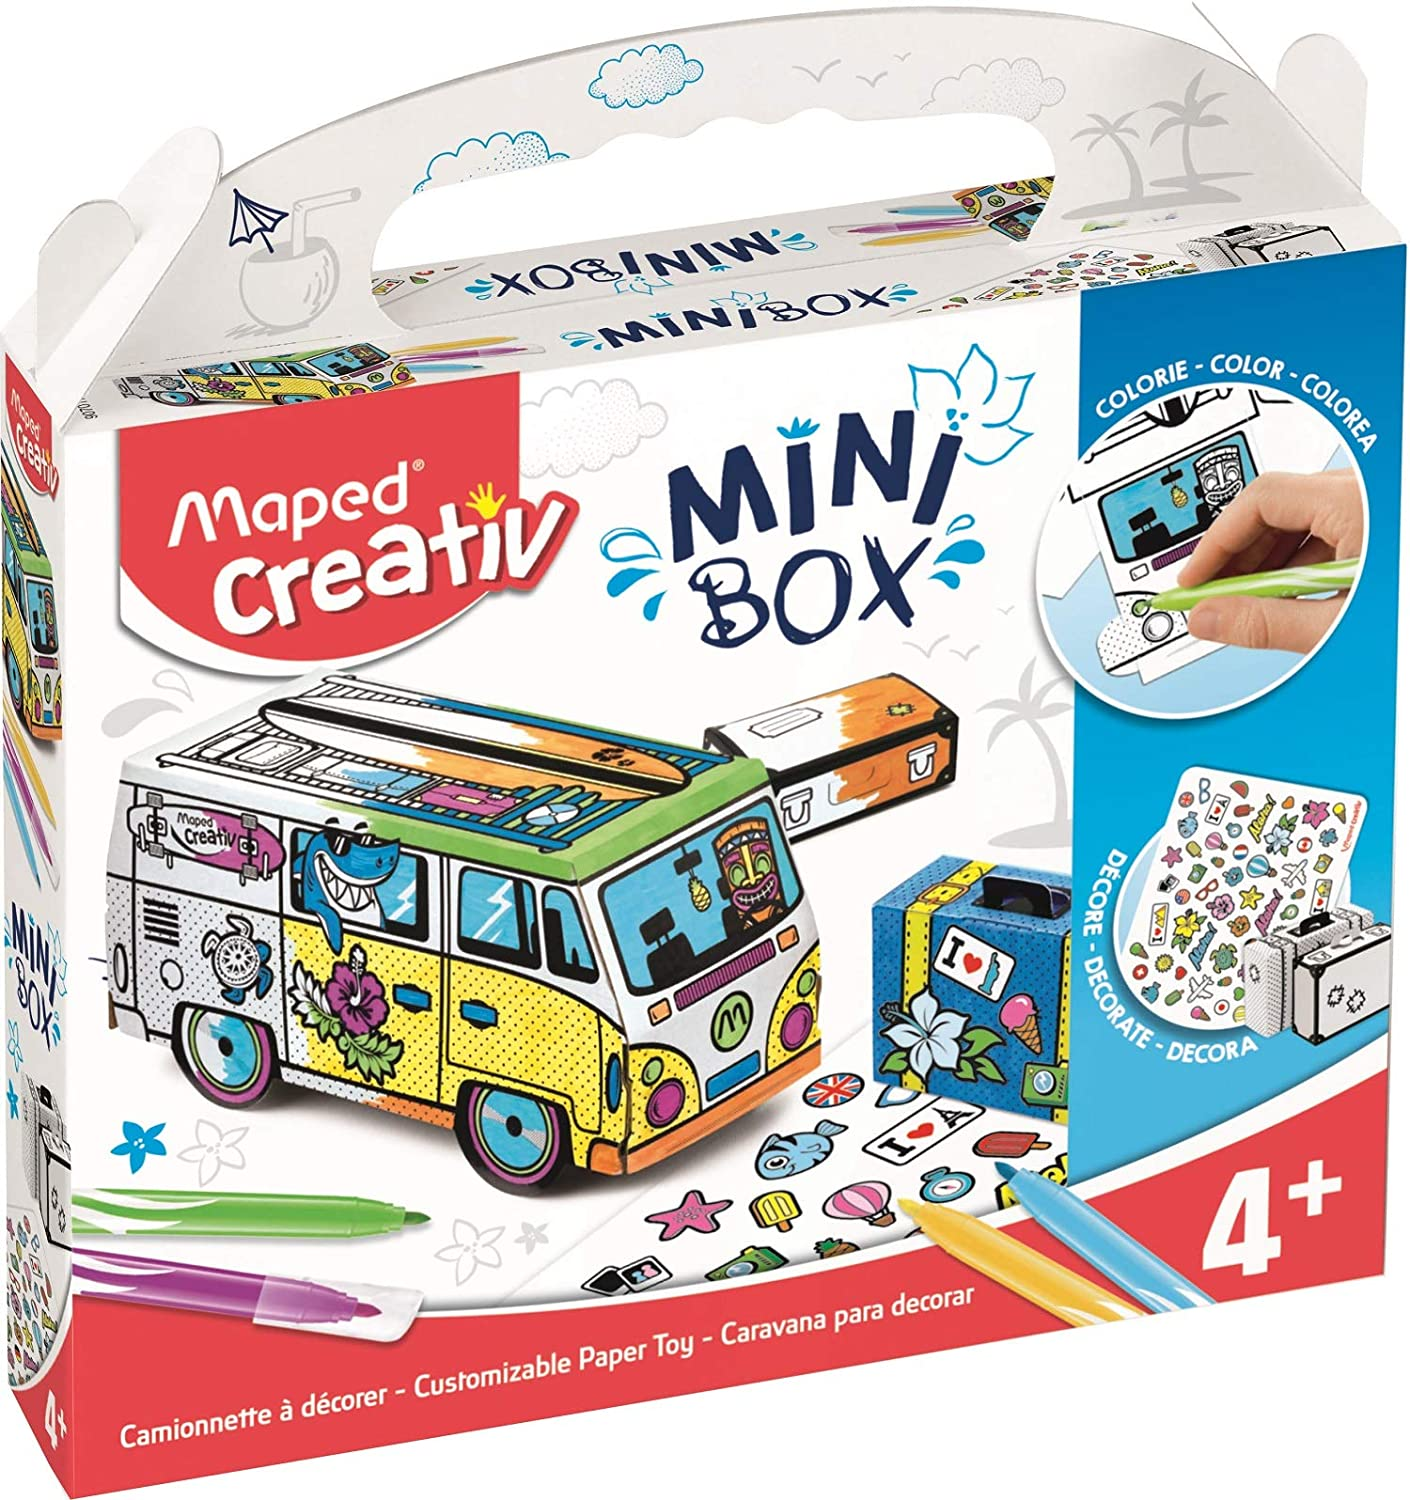 Maped Creativ Customizable Paper Toy